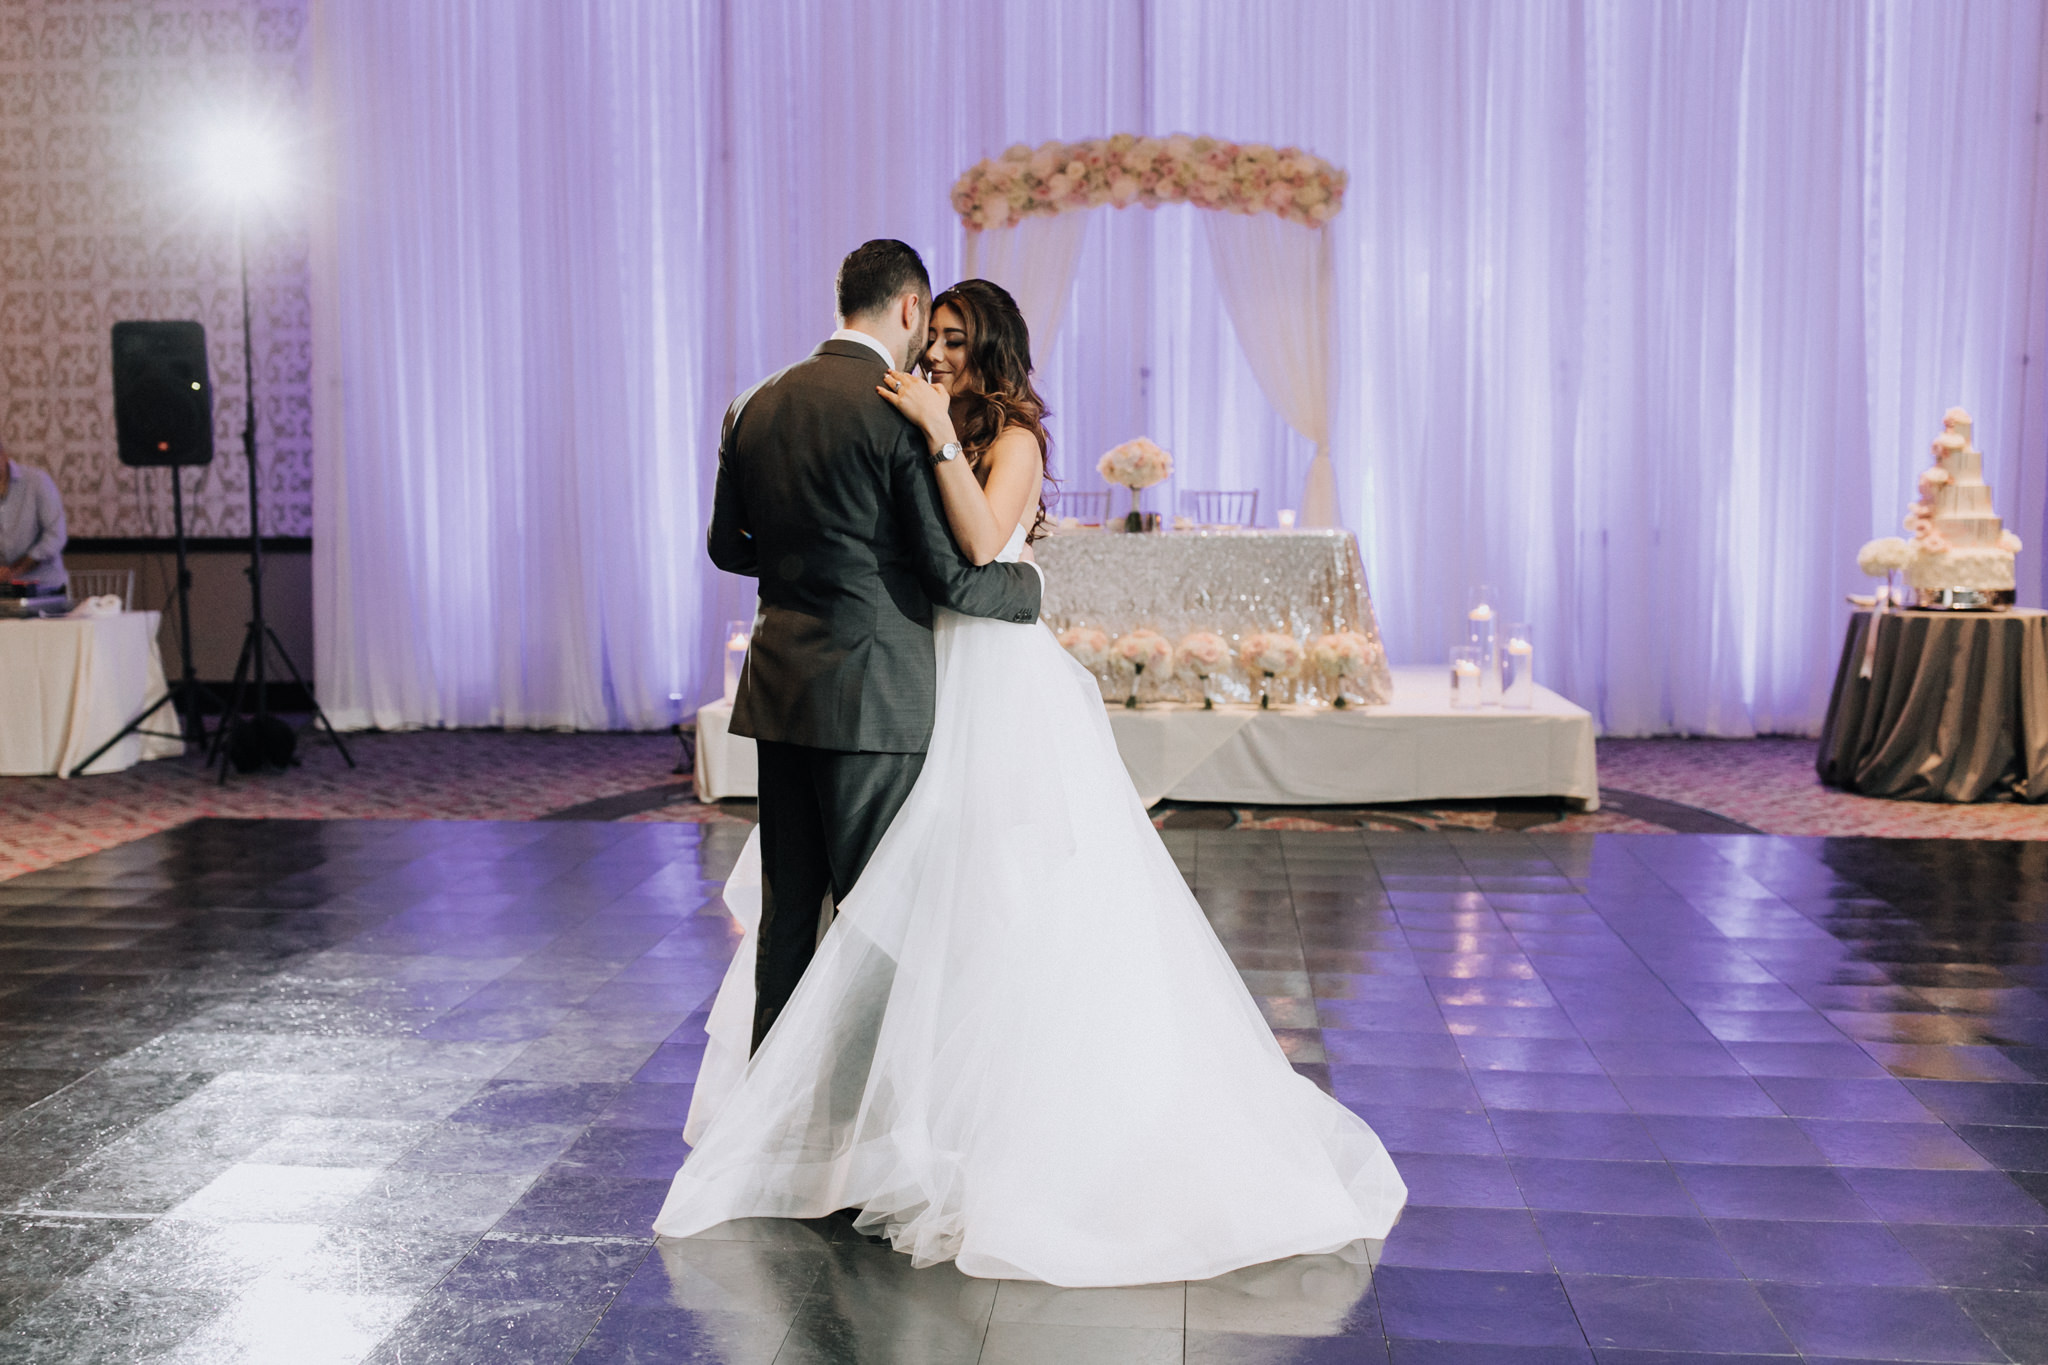 Bridalbliss.com | Portland Wedding | Oregon Event Planning and Design |  Russel Stafford Photography